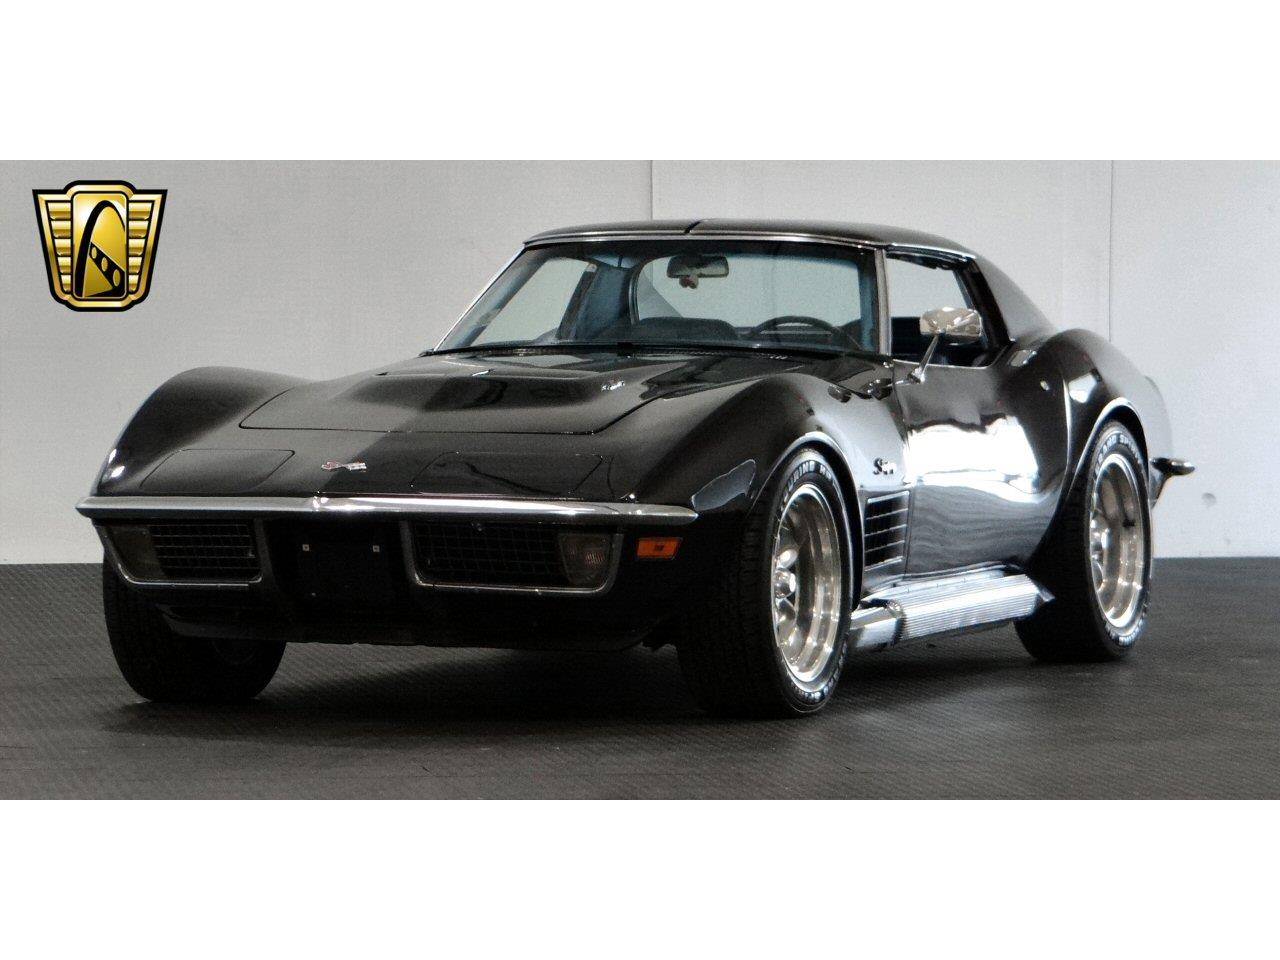 Large Picture of '71 Chevrolet Corvette located in Illinois - $57,000.00 - KF3X